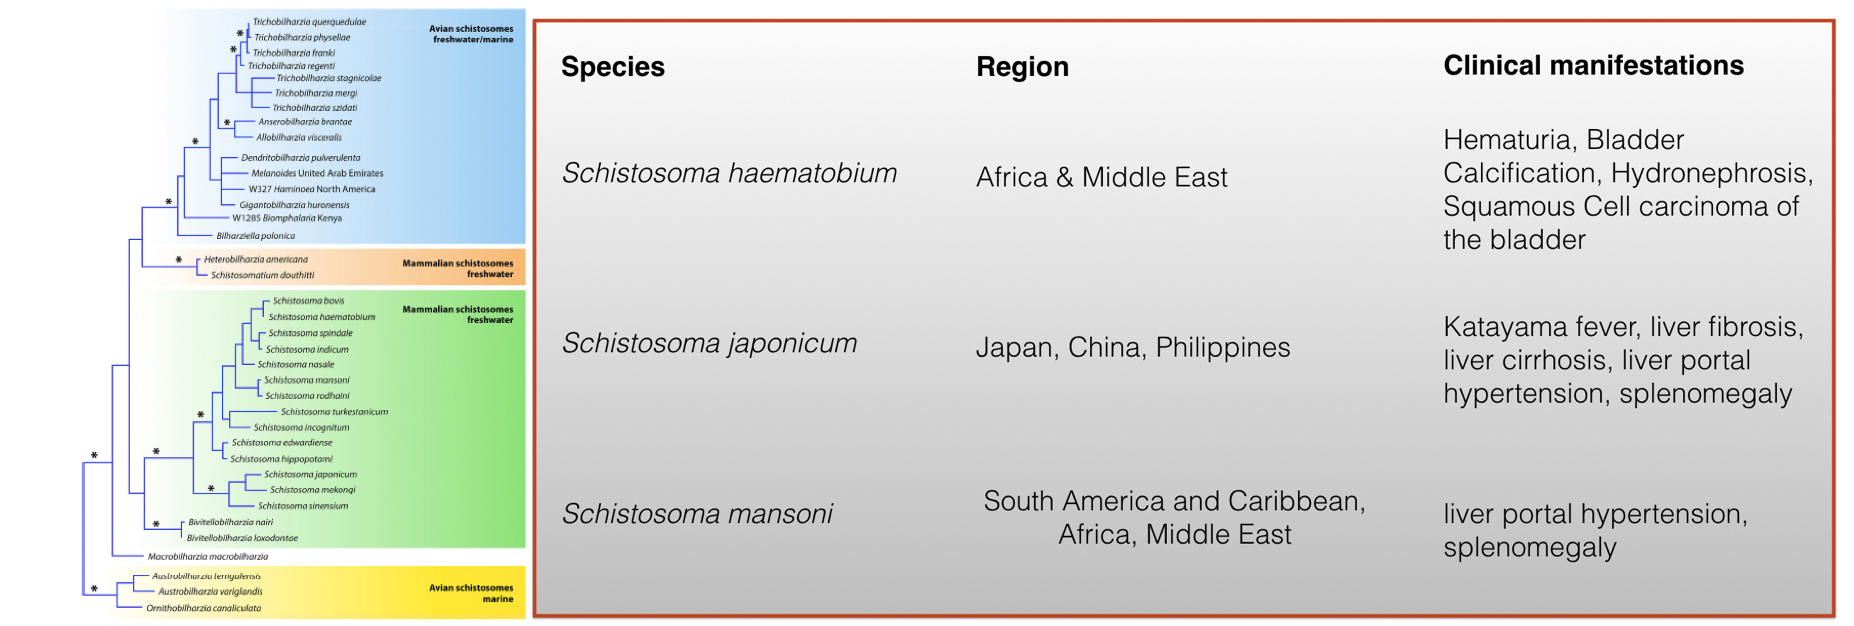 Source of phylogeny image: Reference [2]